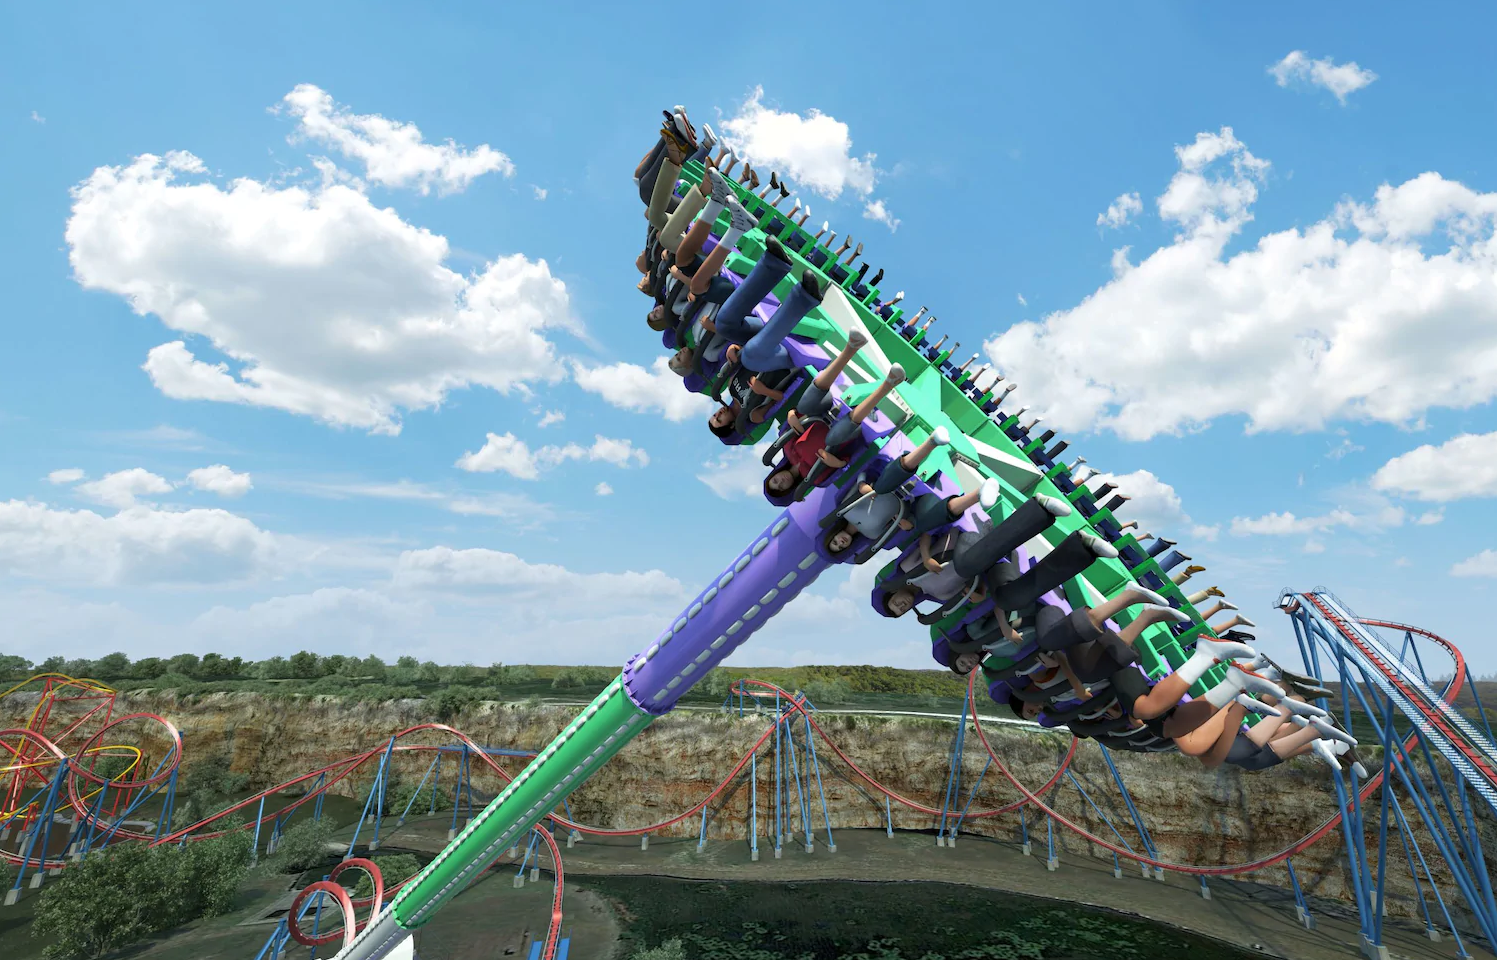 The Joker Carnival of Chaos reaches speeds of 75 miles per hour.